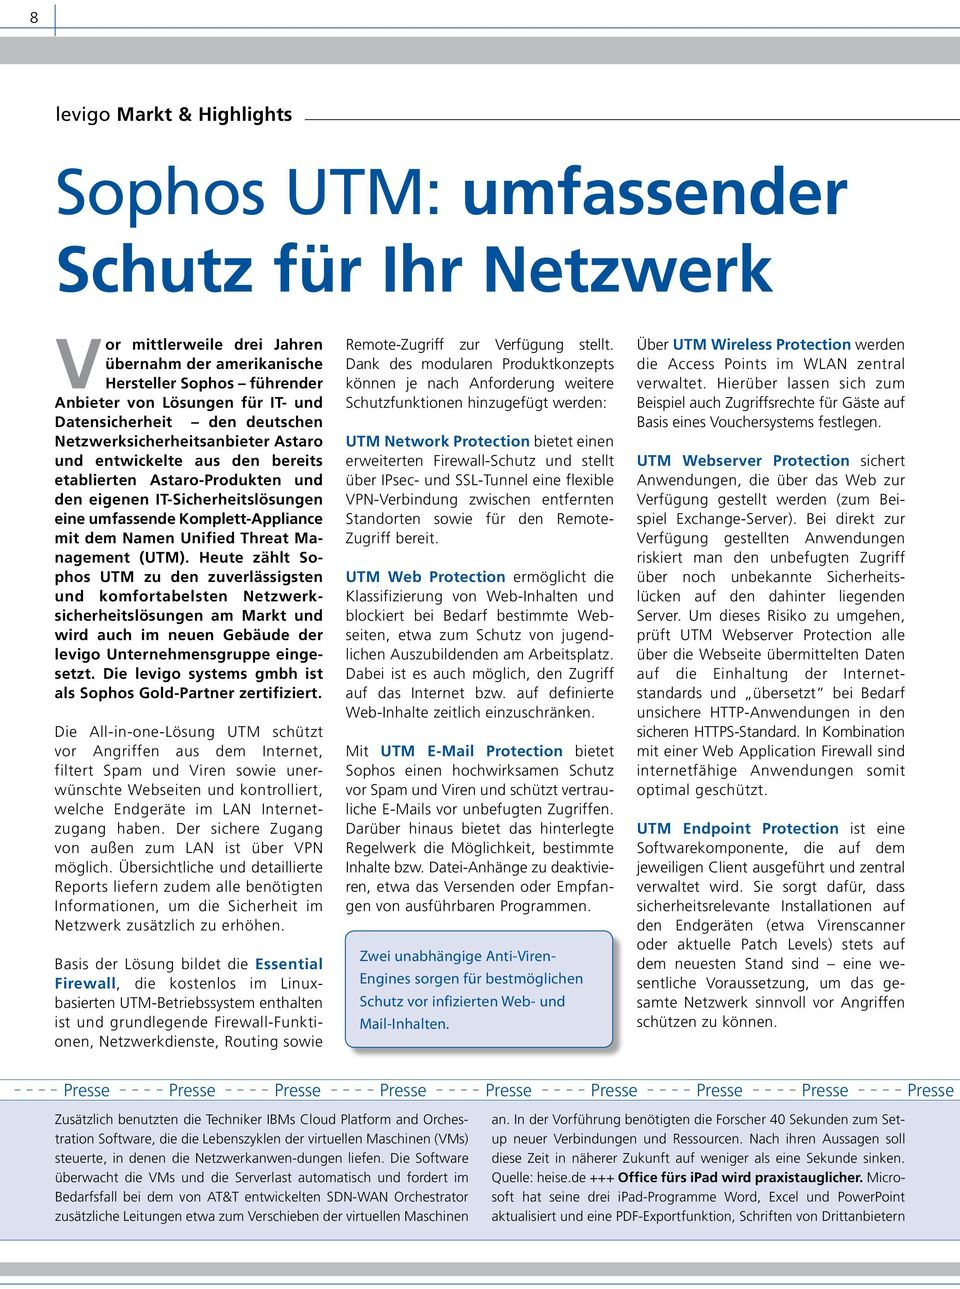 mit dem Namen Unified Threat Management (UTM).